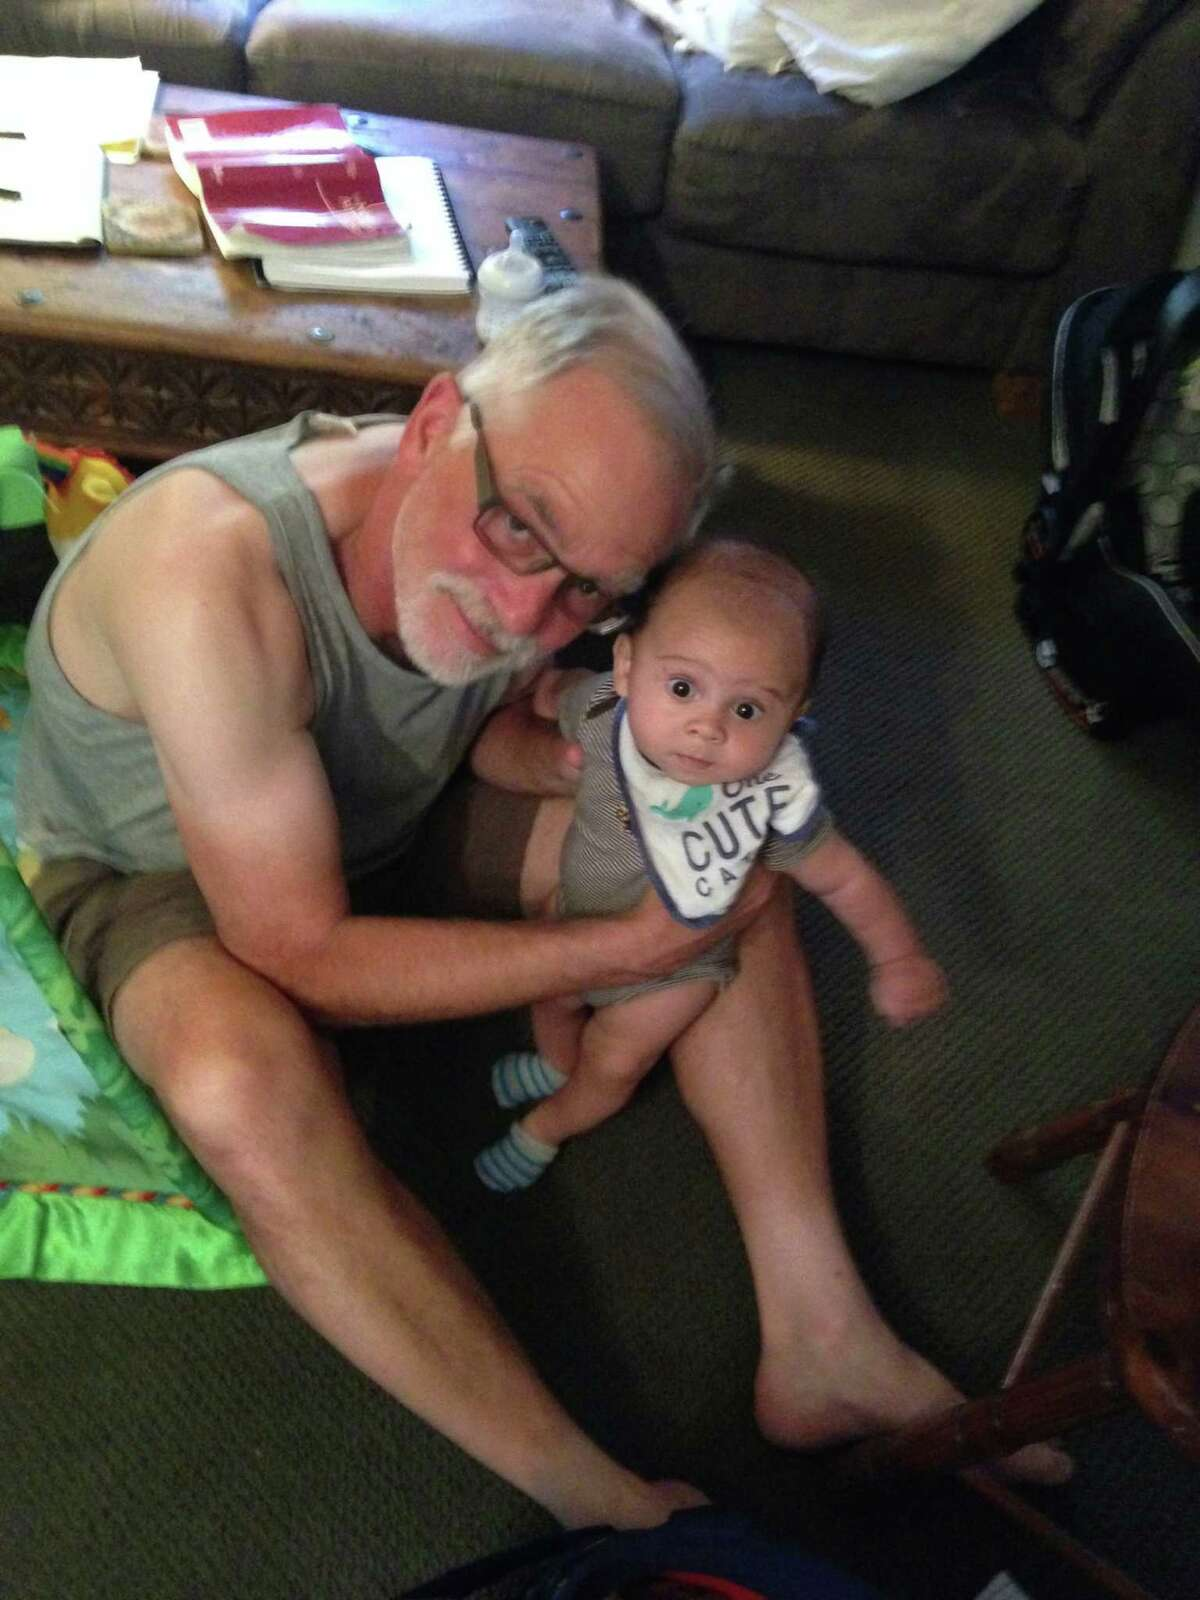 David Ruenzel, of Oakland, leaves behind a grandson born earlier this year.